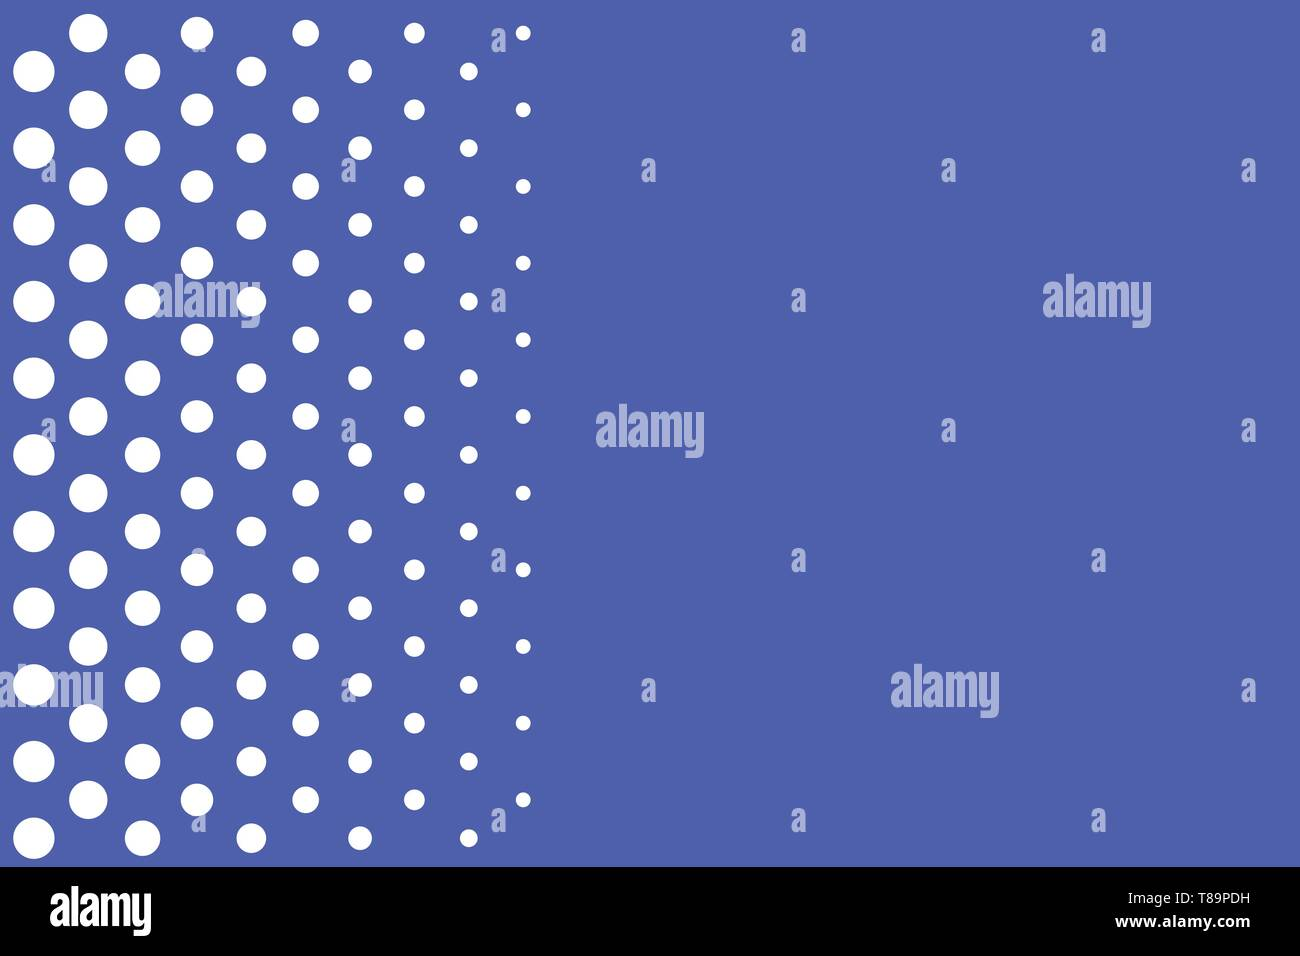 Decreasing points size background other half without drawing. Polka dots Design business Empty template isolated Minimalist graphic layout template fo - Stock Vector